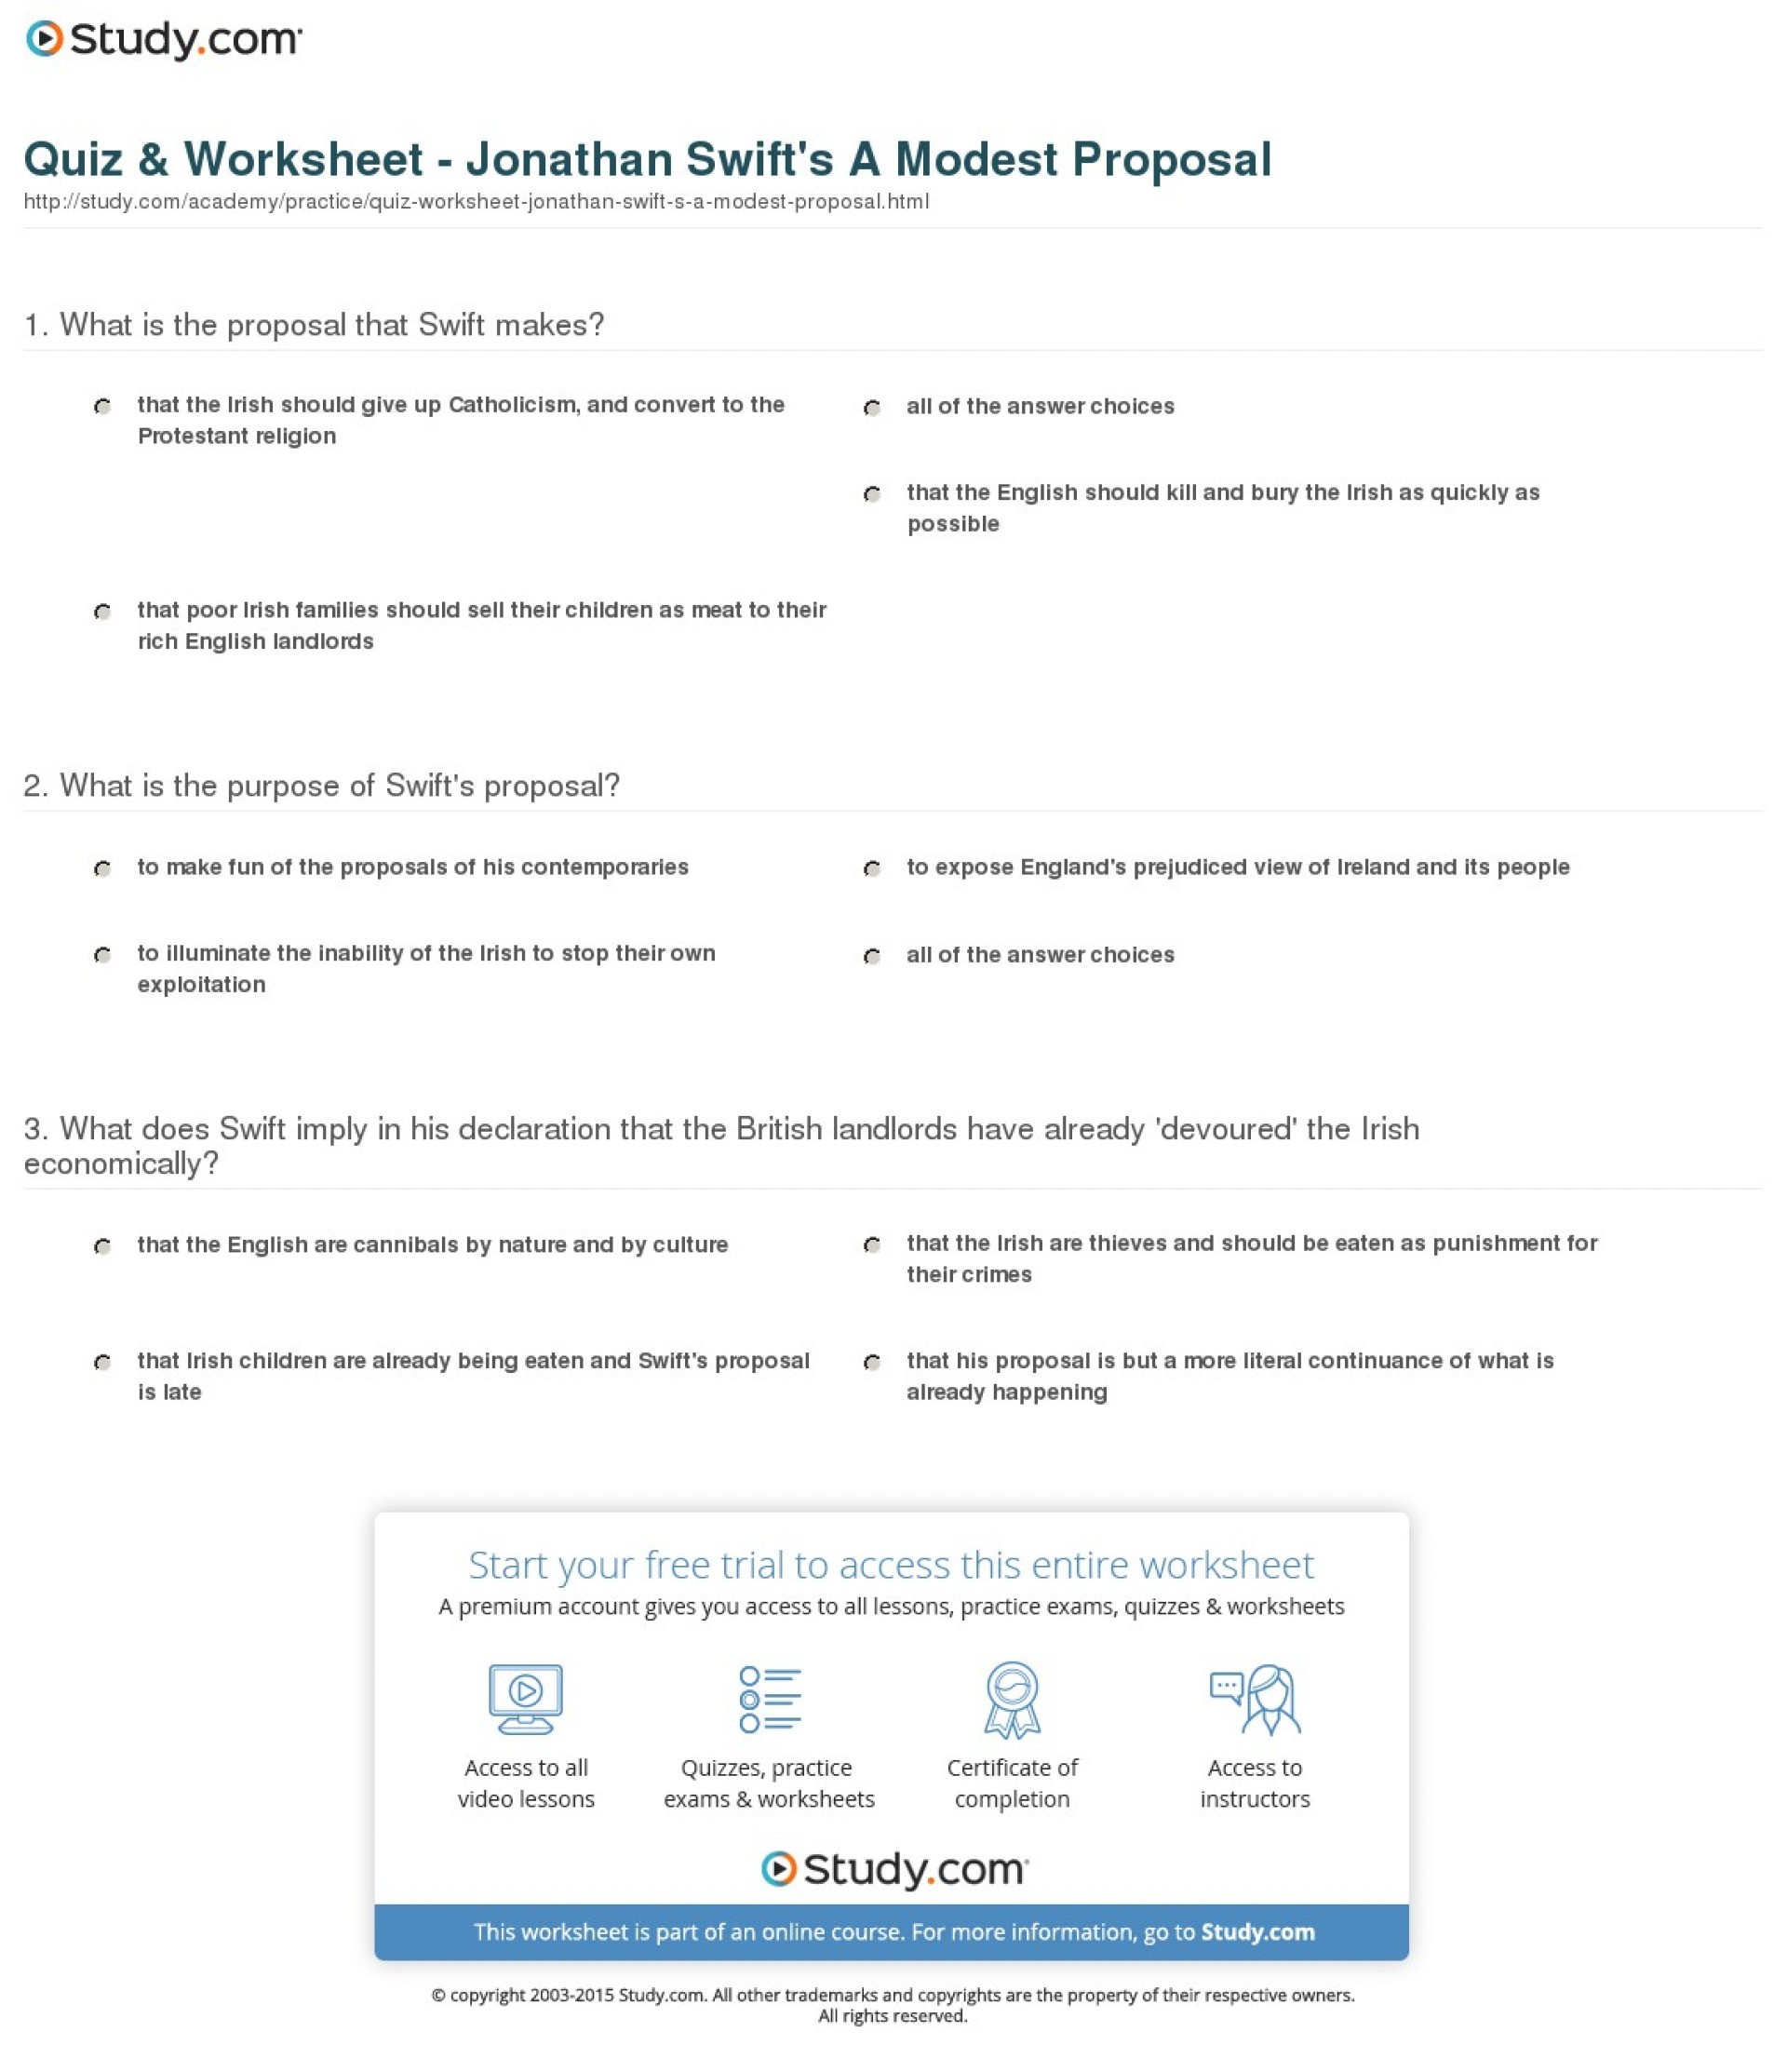 029 Quiz Worksheet Jonathan Swift S Modest Proposal Essay Stunning Examples Free Thesis Example Solution 1920